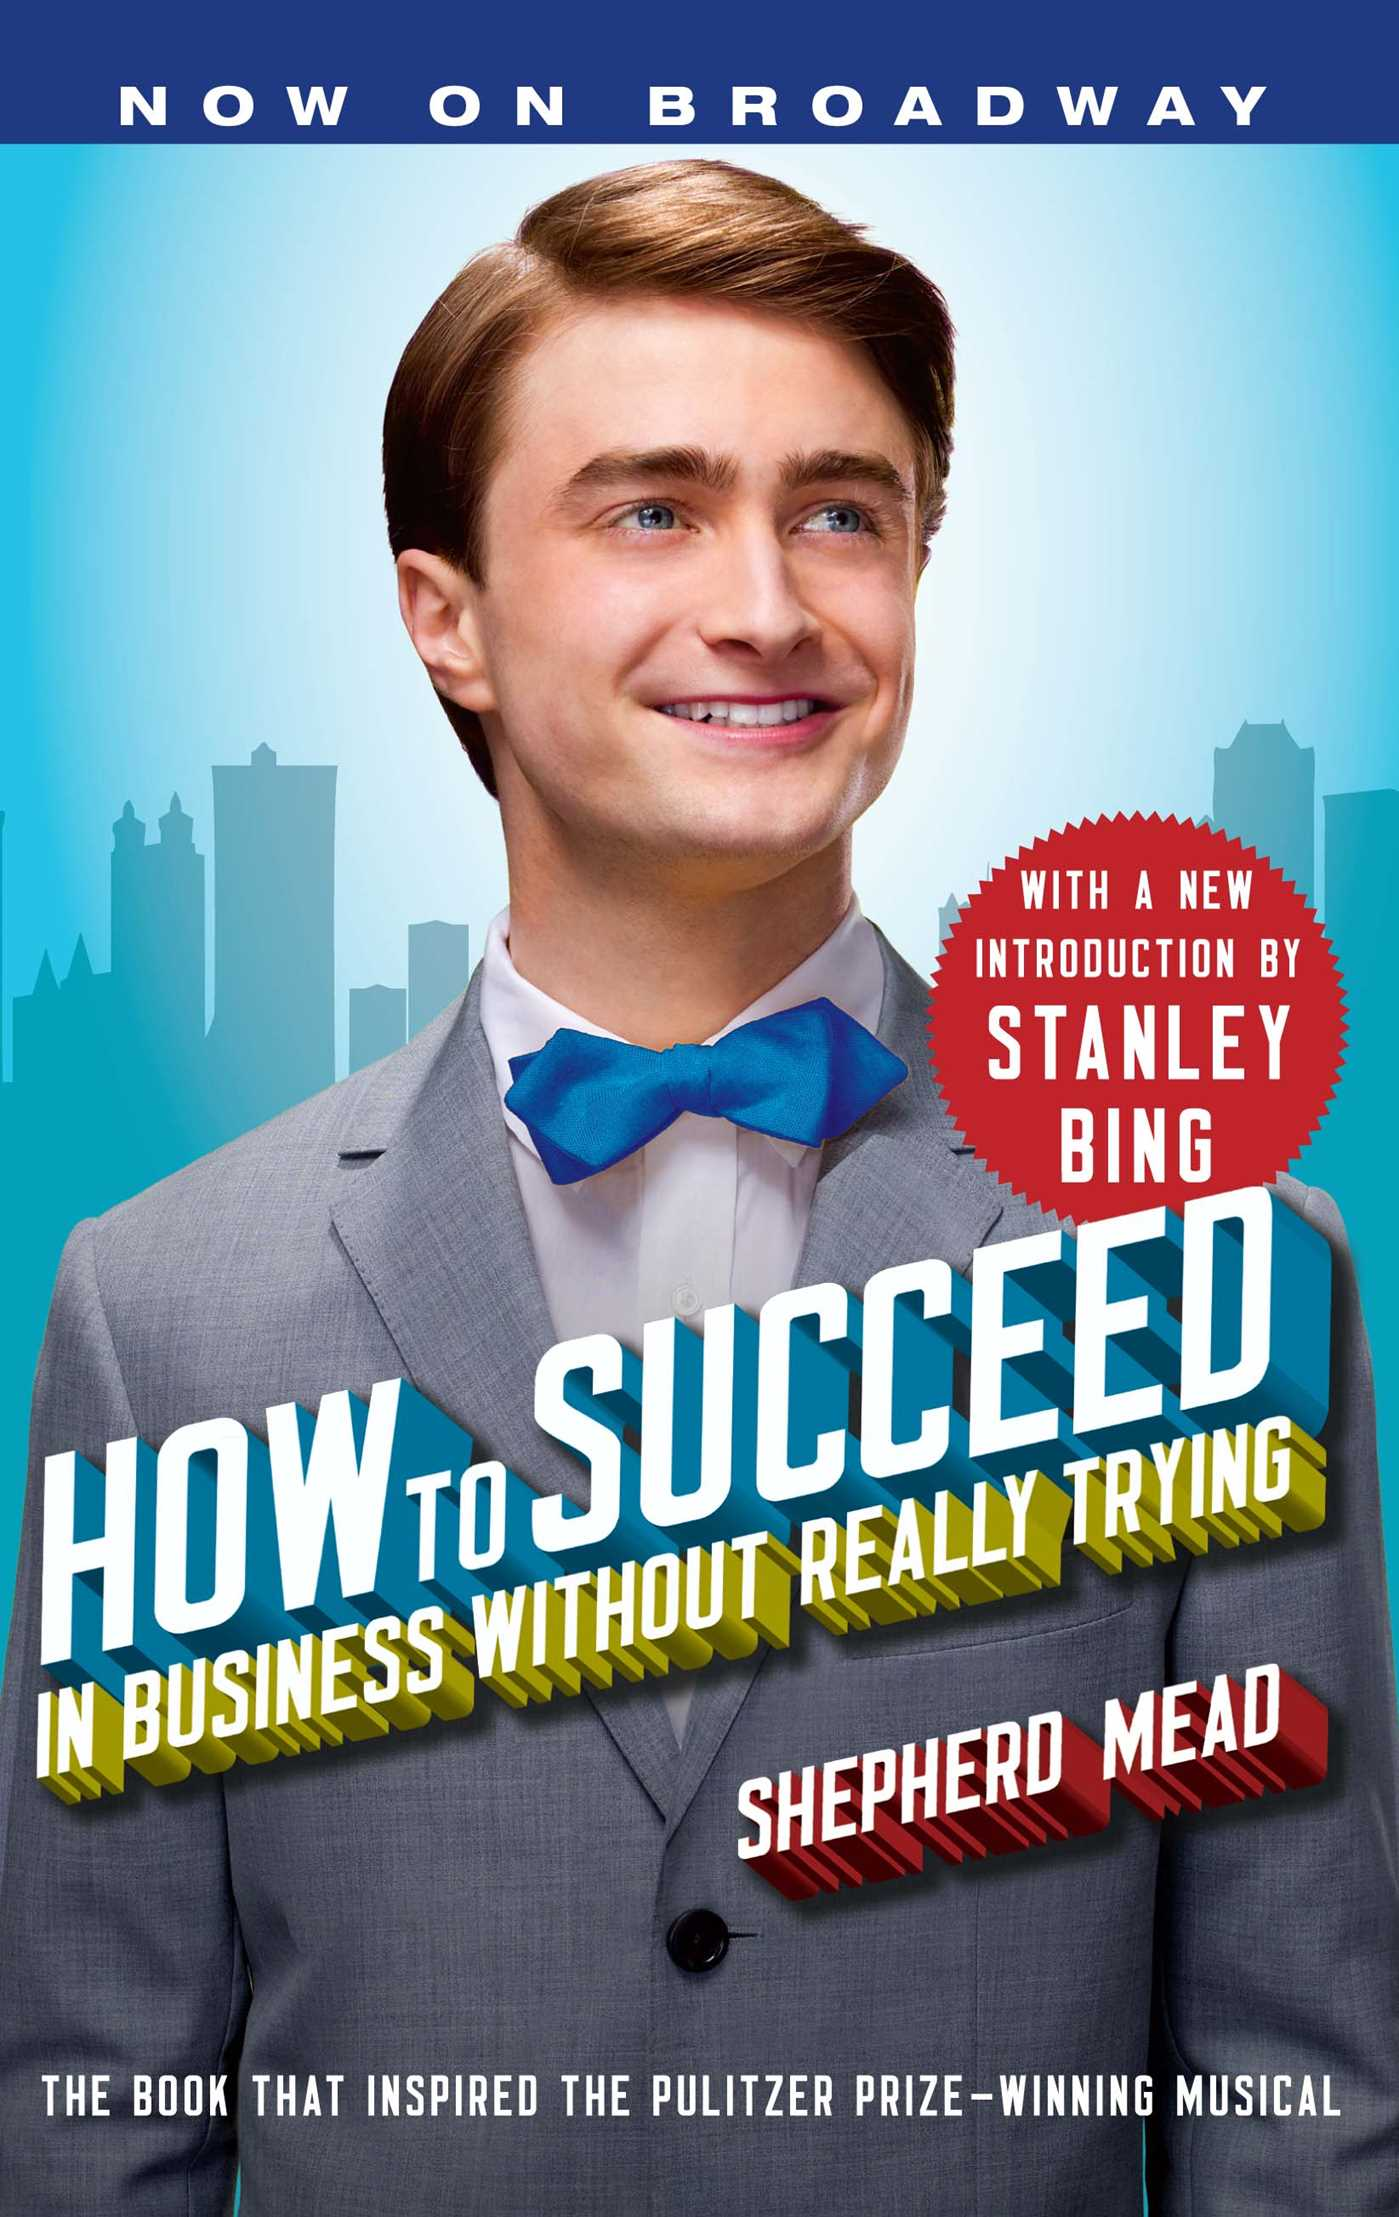 How-to-succeed-in-business-without-really-trying-9781451627091_hr